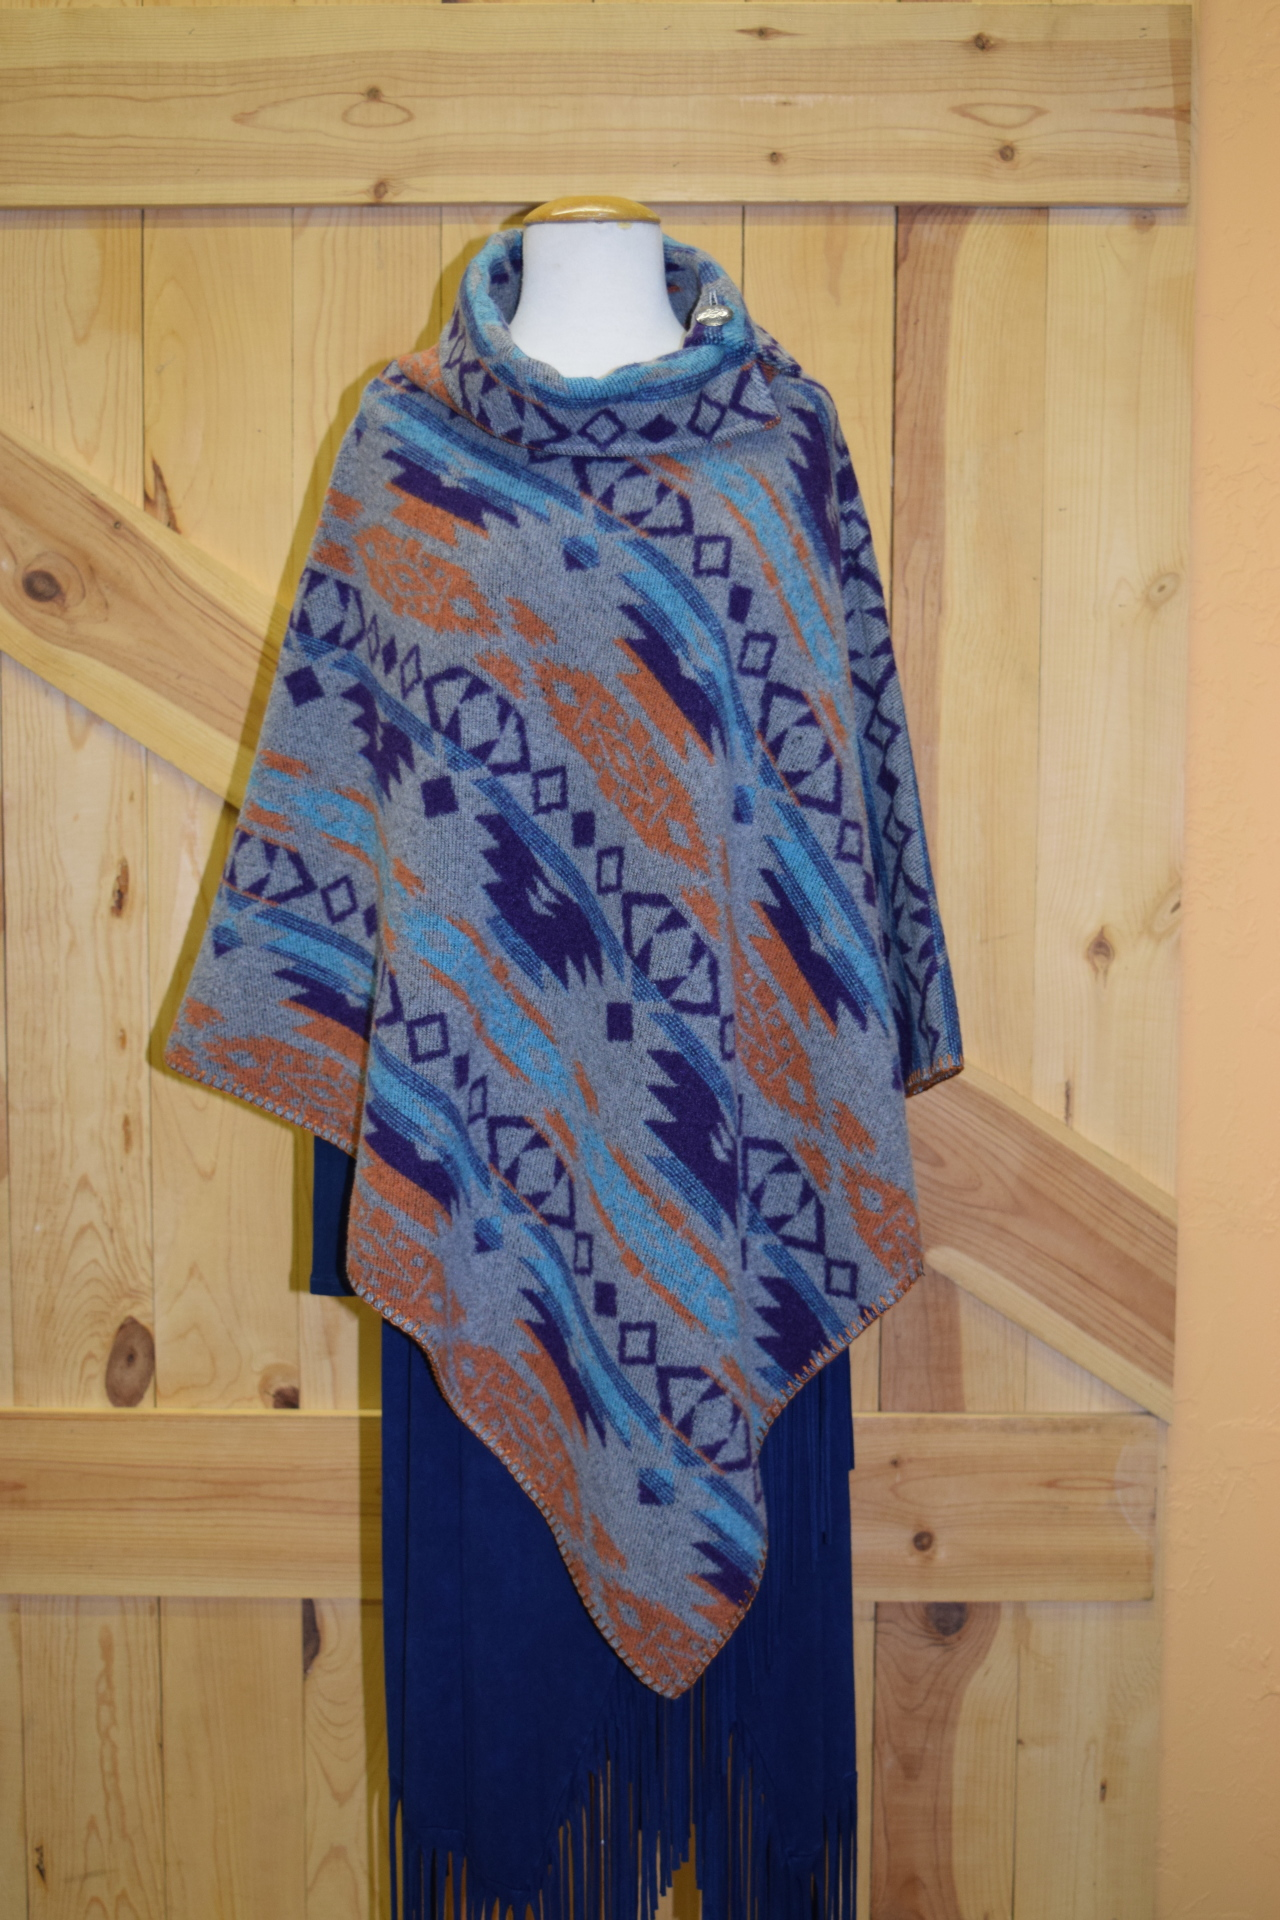 "#208ASST. COL 03 - BUTTON COLLAR 30"" PONCHO - O/S - WAS $129.95 -- SALE $99.95"